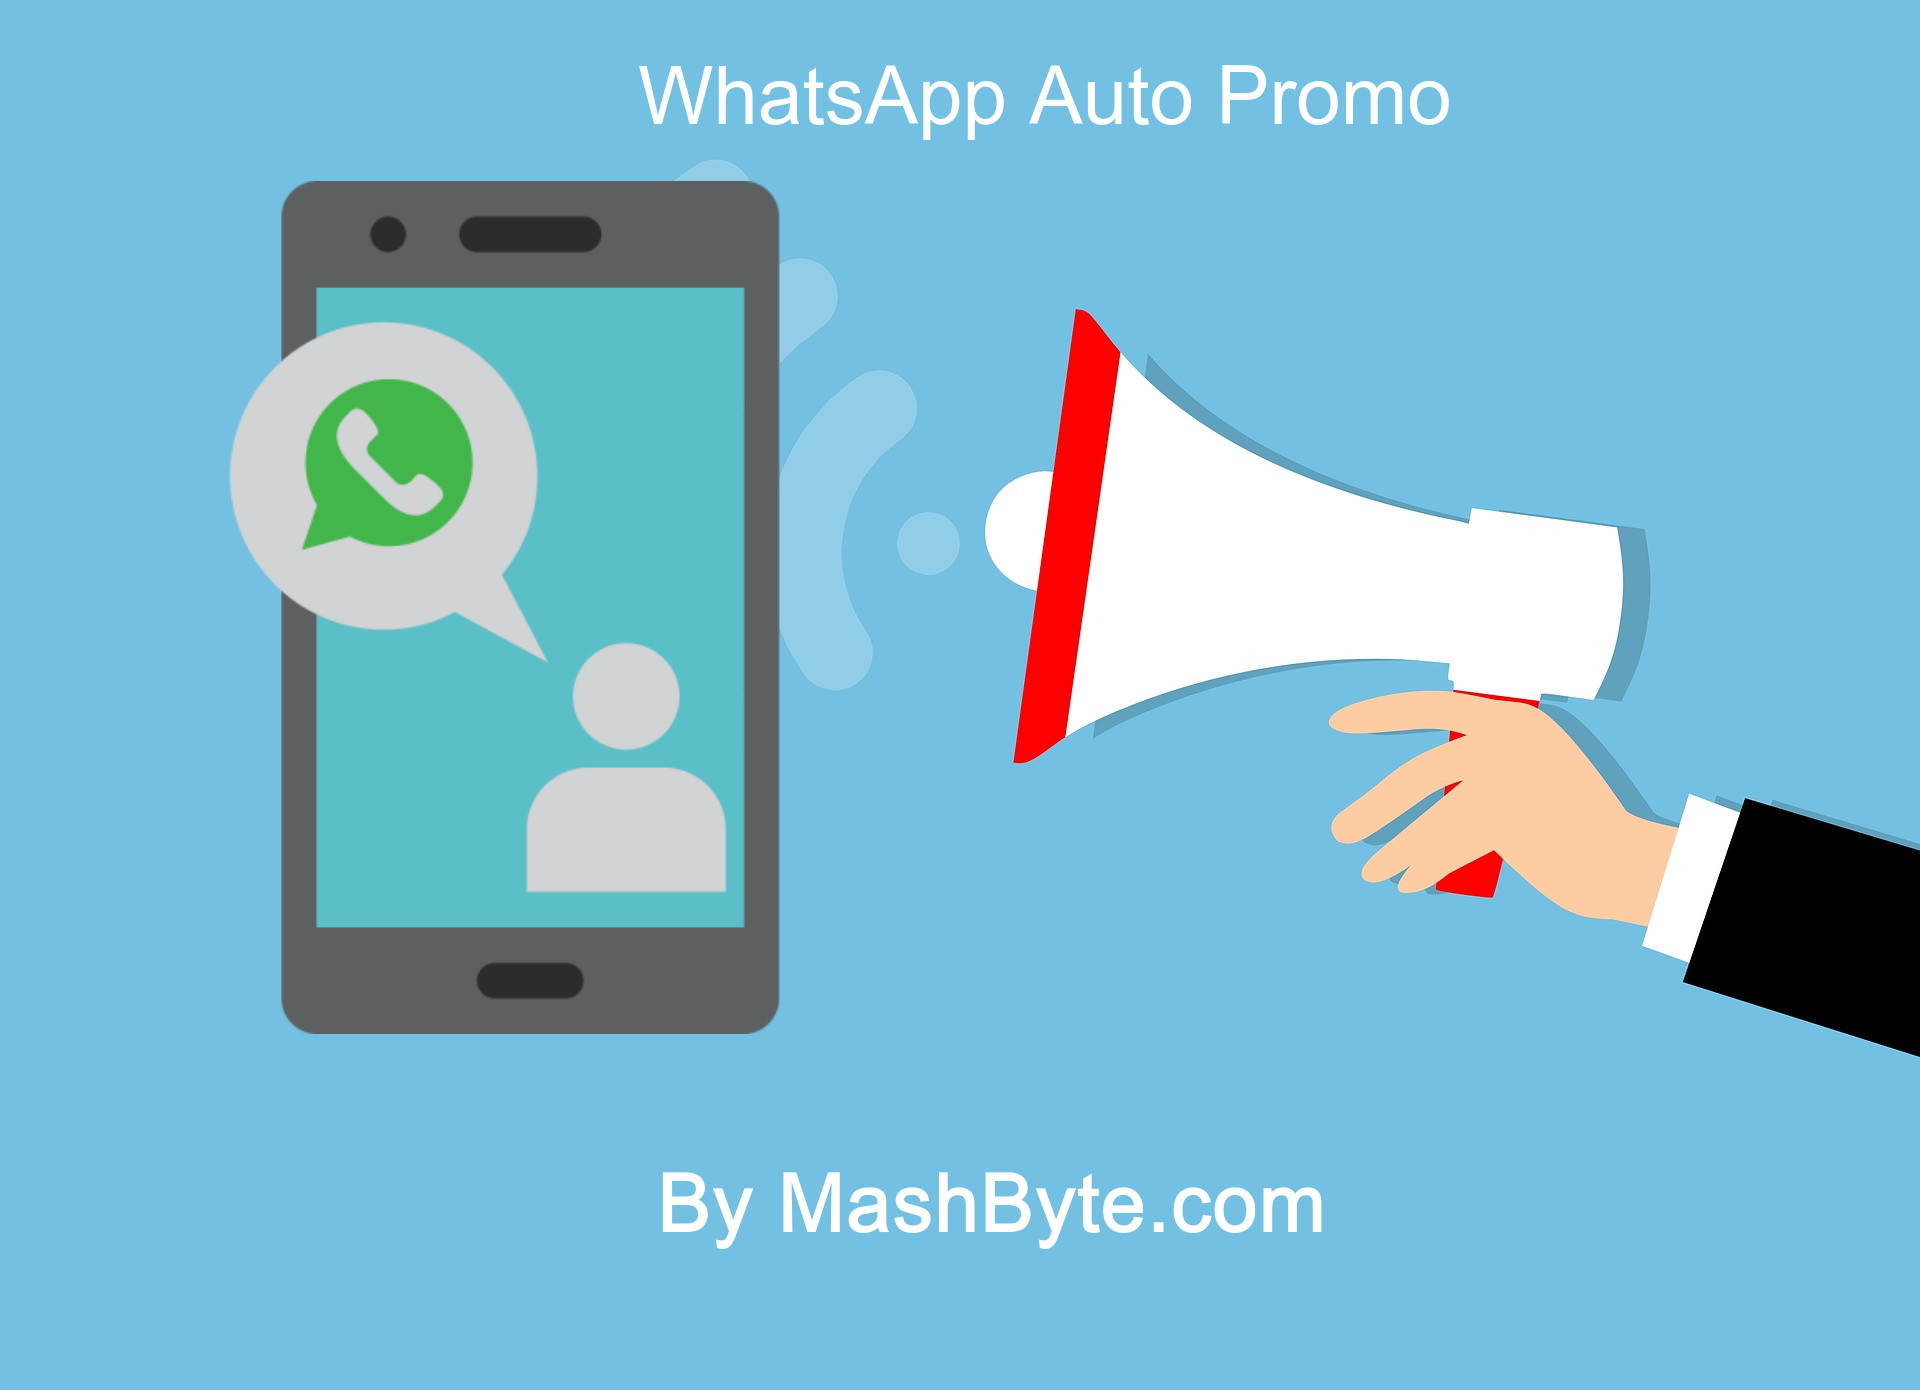 ,Keyword, ,whatsapp marketing software, ,whatsapp marketing tools, ,whatsapp marketing software free, ,whatsapp marketing course, ,whatsapp marketing tutorial, ,whatsapp promotion message, ,whatsapp marketing services, ,whatsapp marketing tool free download, ,Keyword, ,whatsapp marketing campaign examples, ,whatsapp promotion message, ,whatsapp marketing course, ,whatsapp marketing india, ,whatsapp marketing 2020, ,wapanel, ,best whatsapp marketing course, ,whatsapp marketing software, ,how to leverage whatsapp for business, ,whatsapp marketing tools, ,whatsapp marketing benefits, ,whatsapp marketing tutorial, ,whatsapp user segments, ,whatsapp marketing message sample, ,zoho whatsapp marketing, ,whatsapp marketing case study, ,whatsapp for brands, ,whatsapp marketing strategy pdf, ,whatsapp marketing strategy 2020, ,whatsapp status marketing strategy, ,whatsapp sales message template, ,whatsapp marketing ppt, ,sales and marketing whatsapp group link, ,distributor whatsapp group, ,whatsapp career indonesia, ,whatsapp partners, ,whatsapp analytics, ,network marketing whatsapp group link,